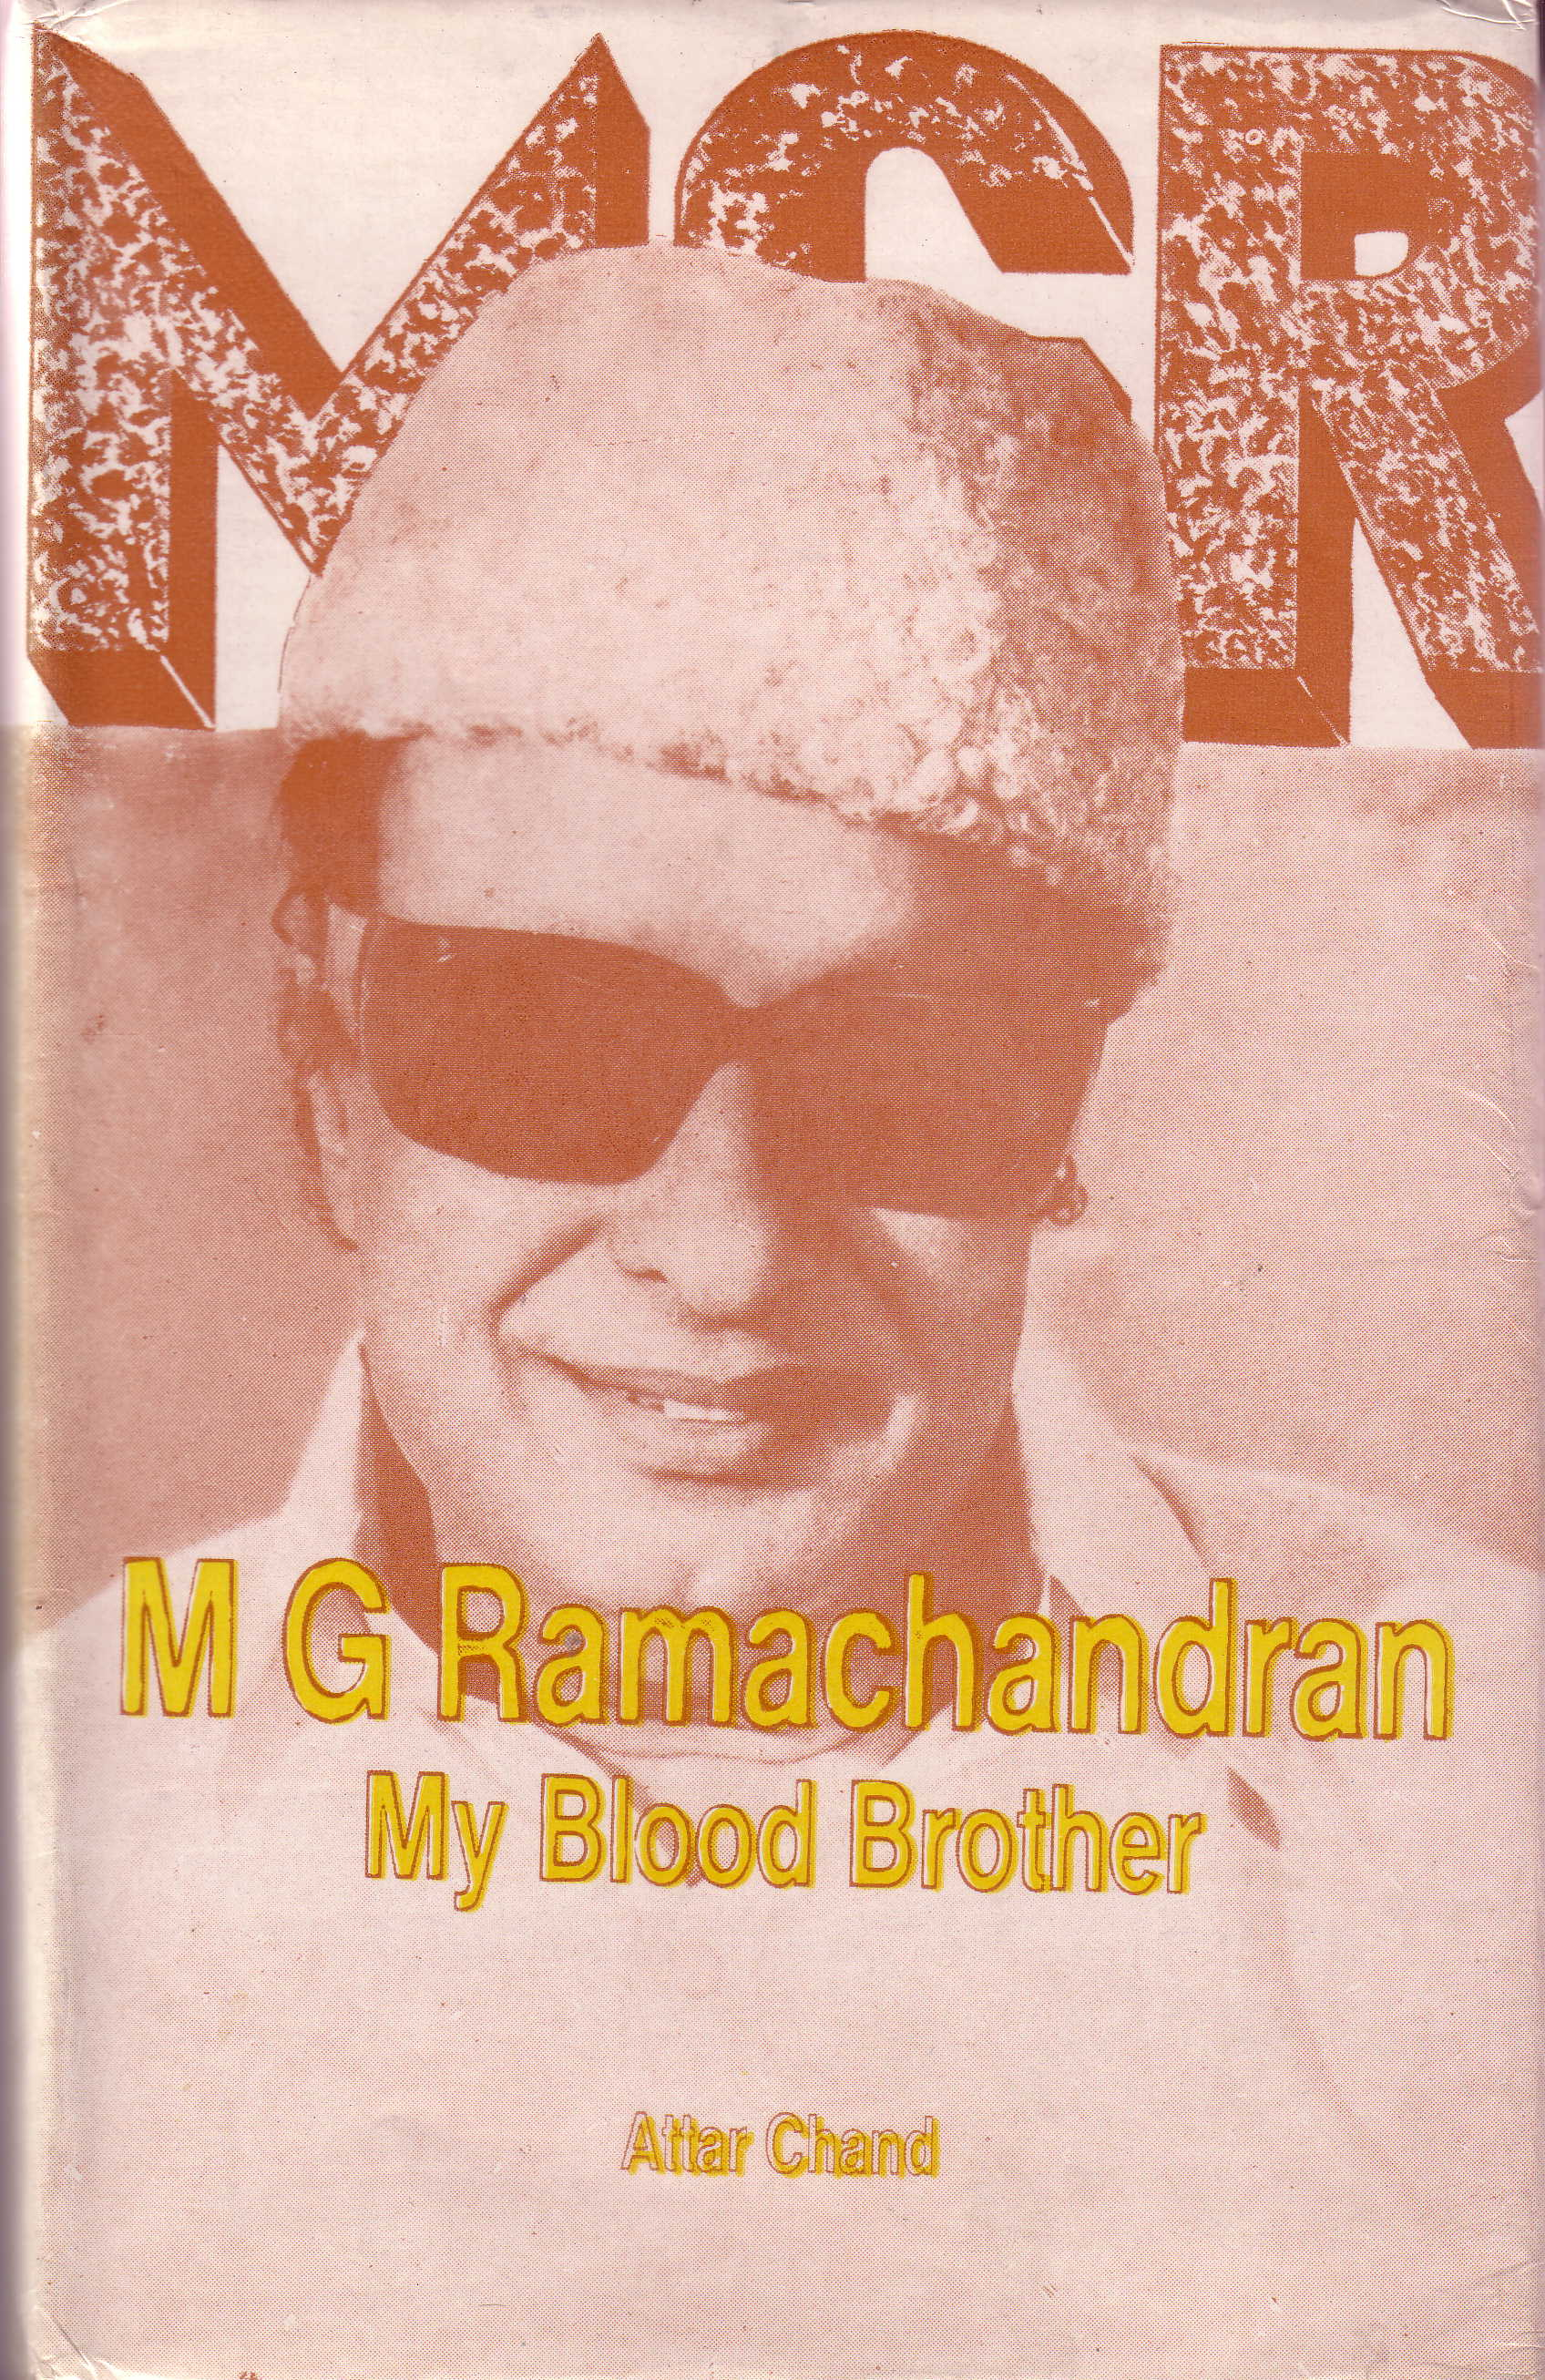 First MGR biography in English